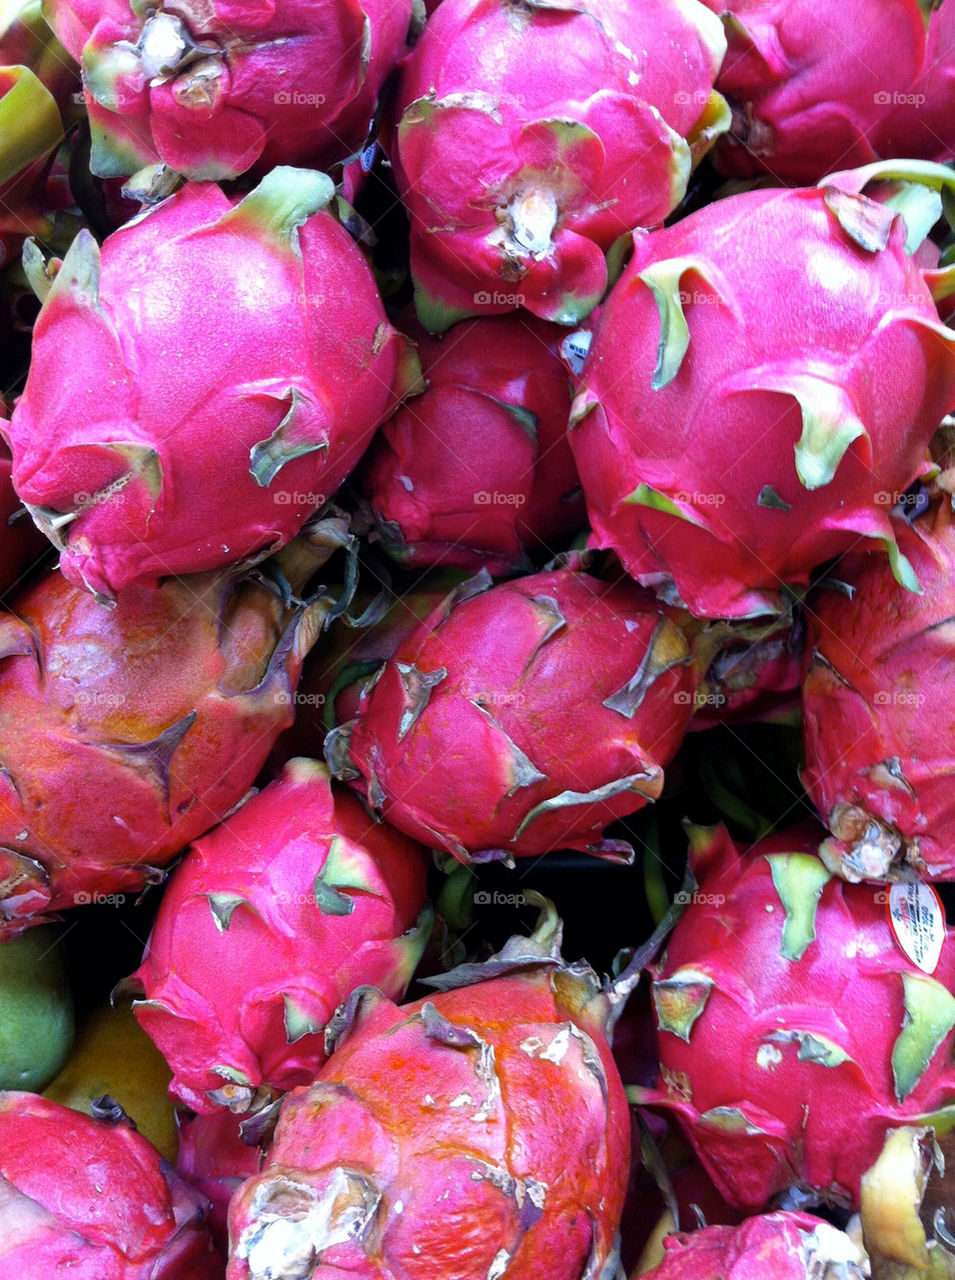 Dragonfruit at a located at a midwestern supermarket.